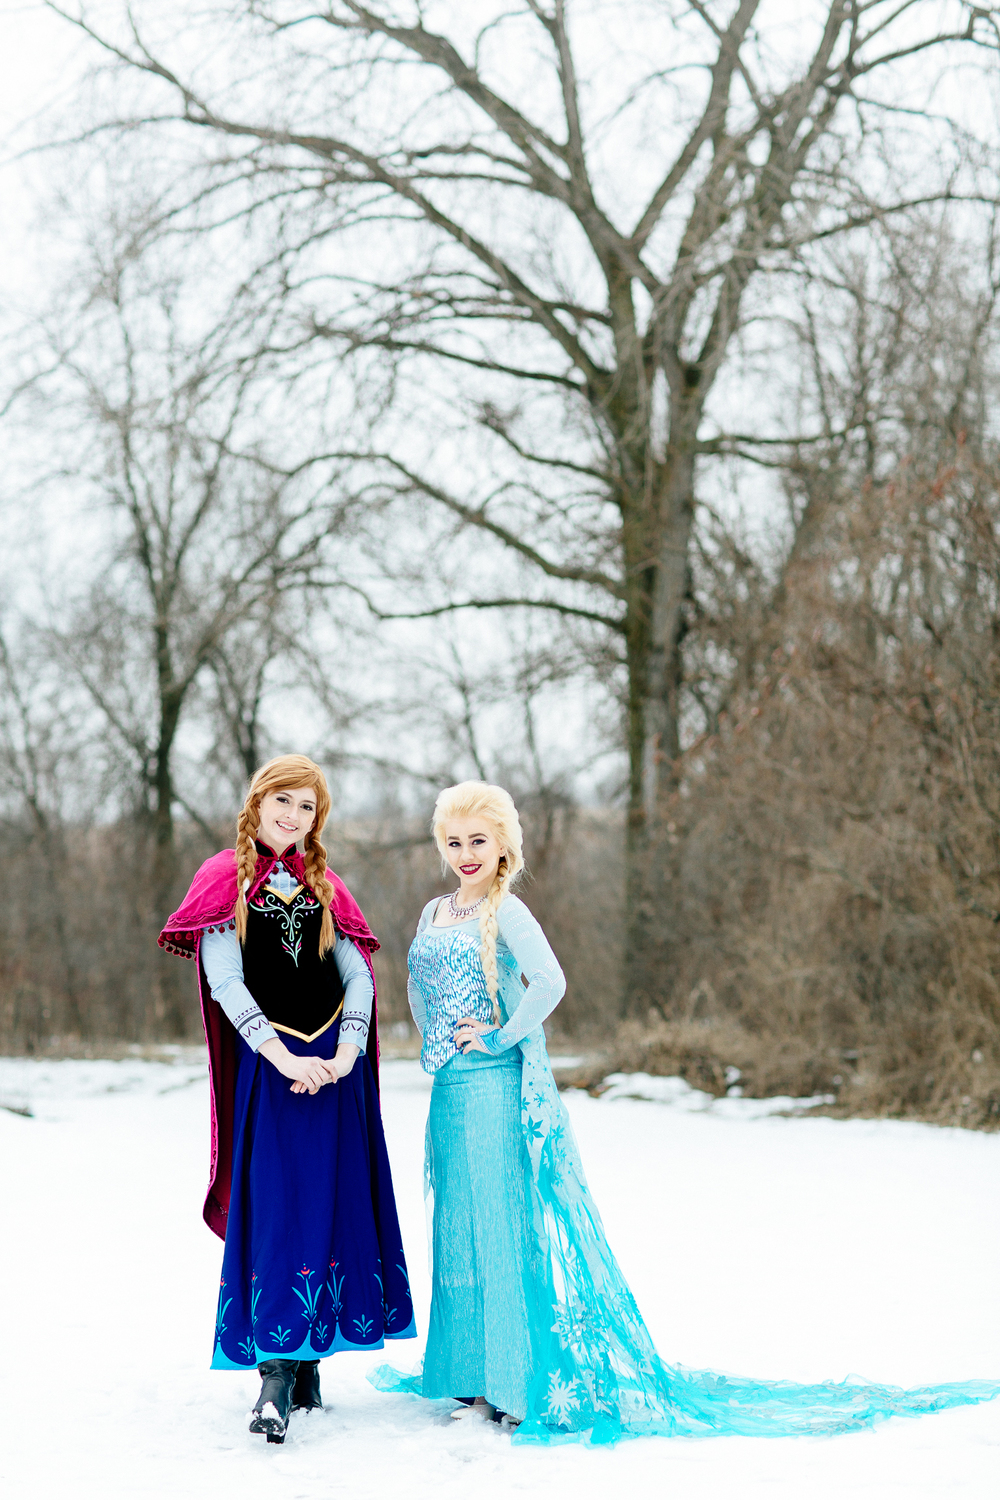 Jen_Montgomery_Photography_Wedding_Elsa&Anna.jpg